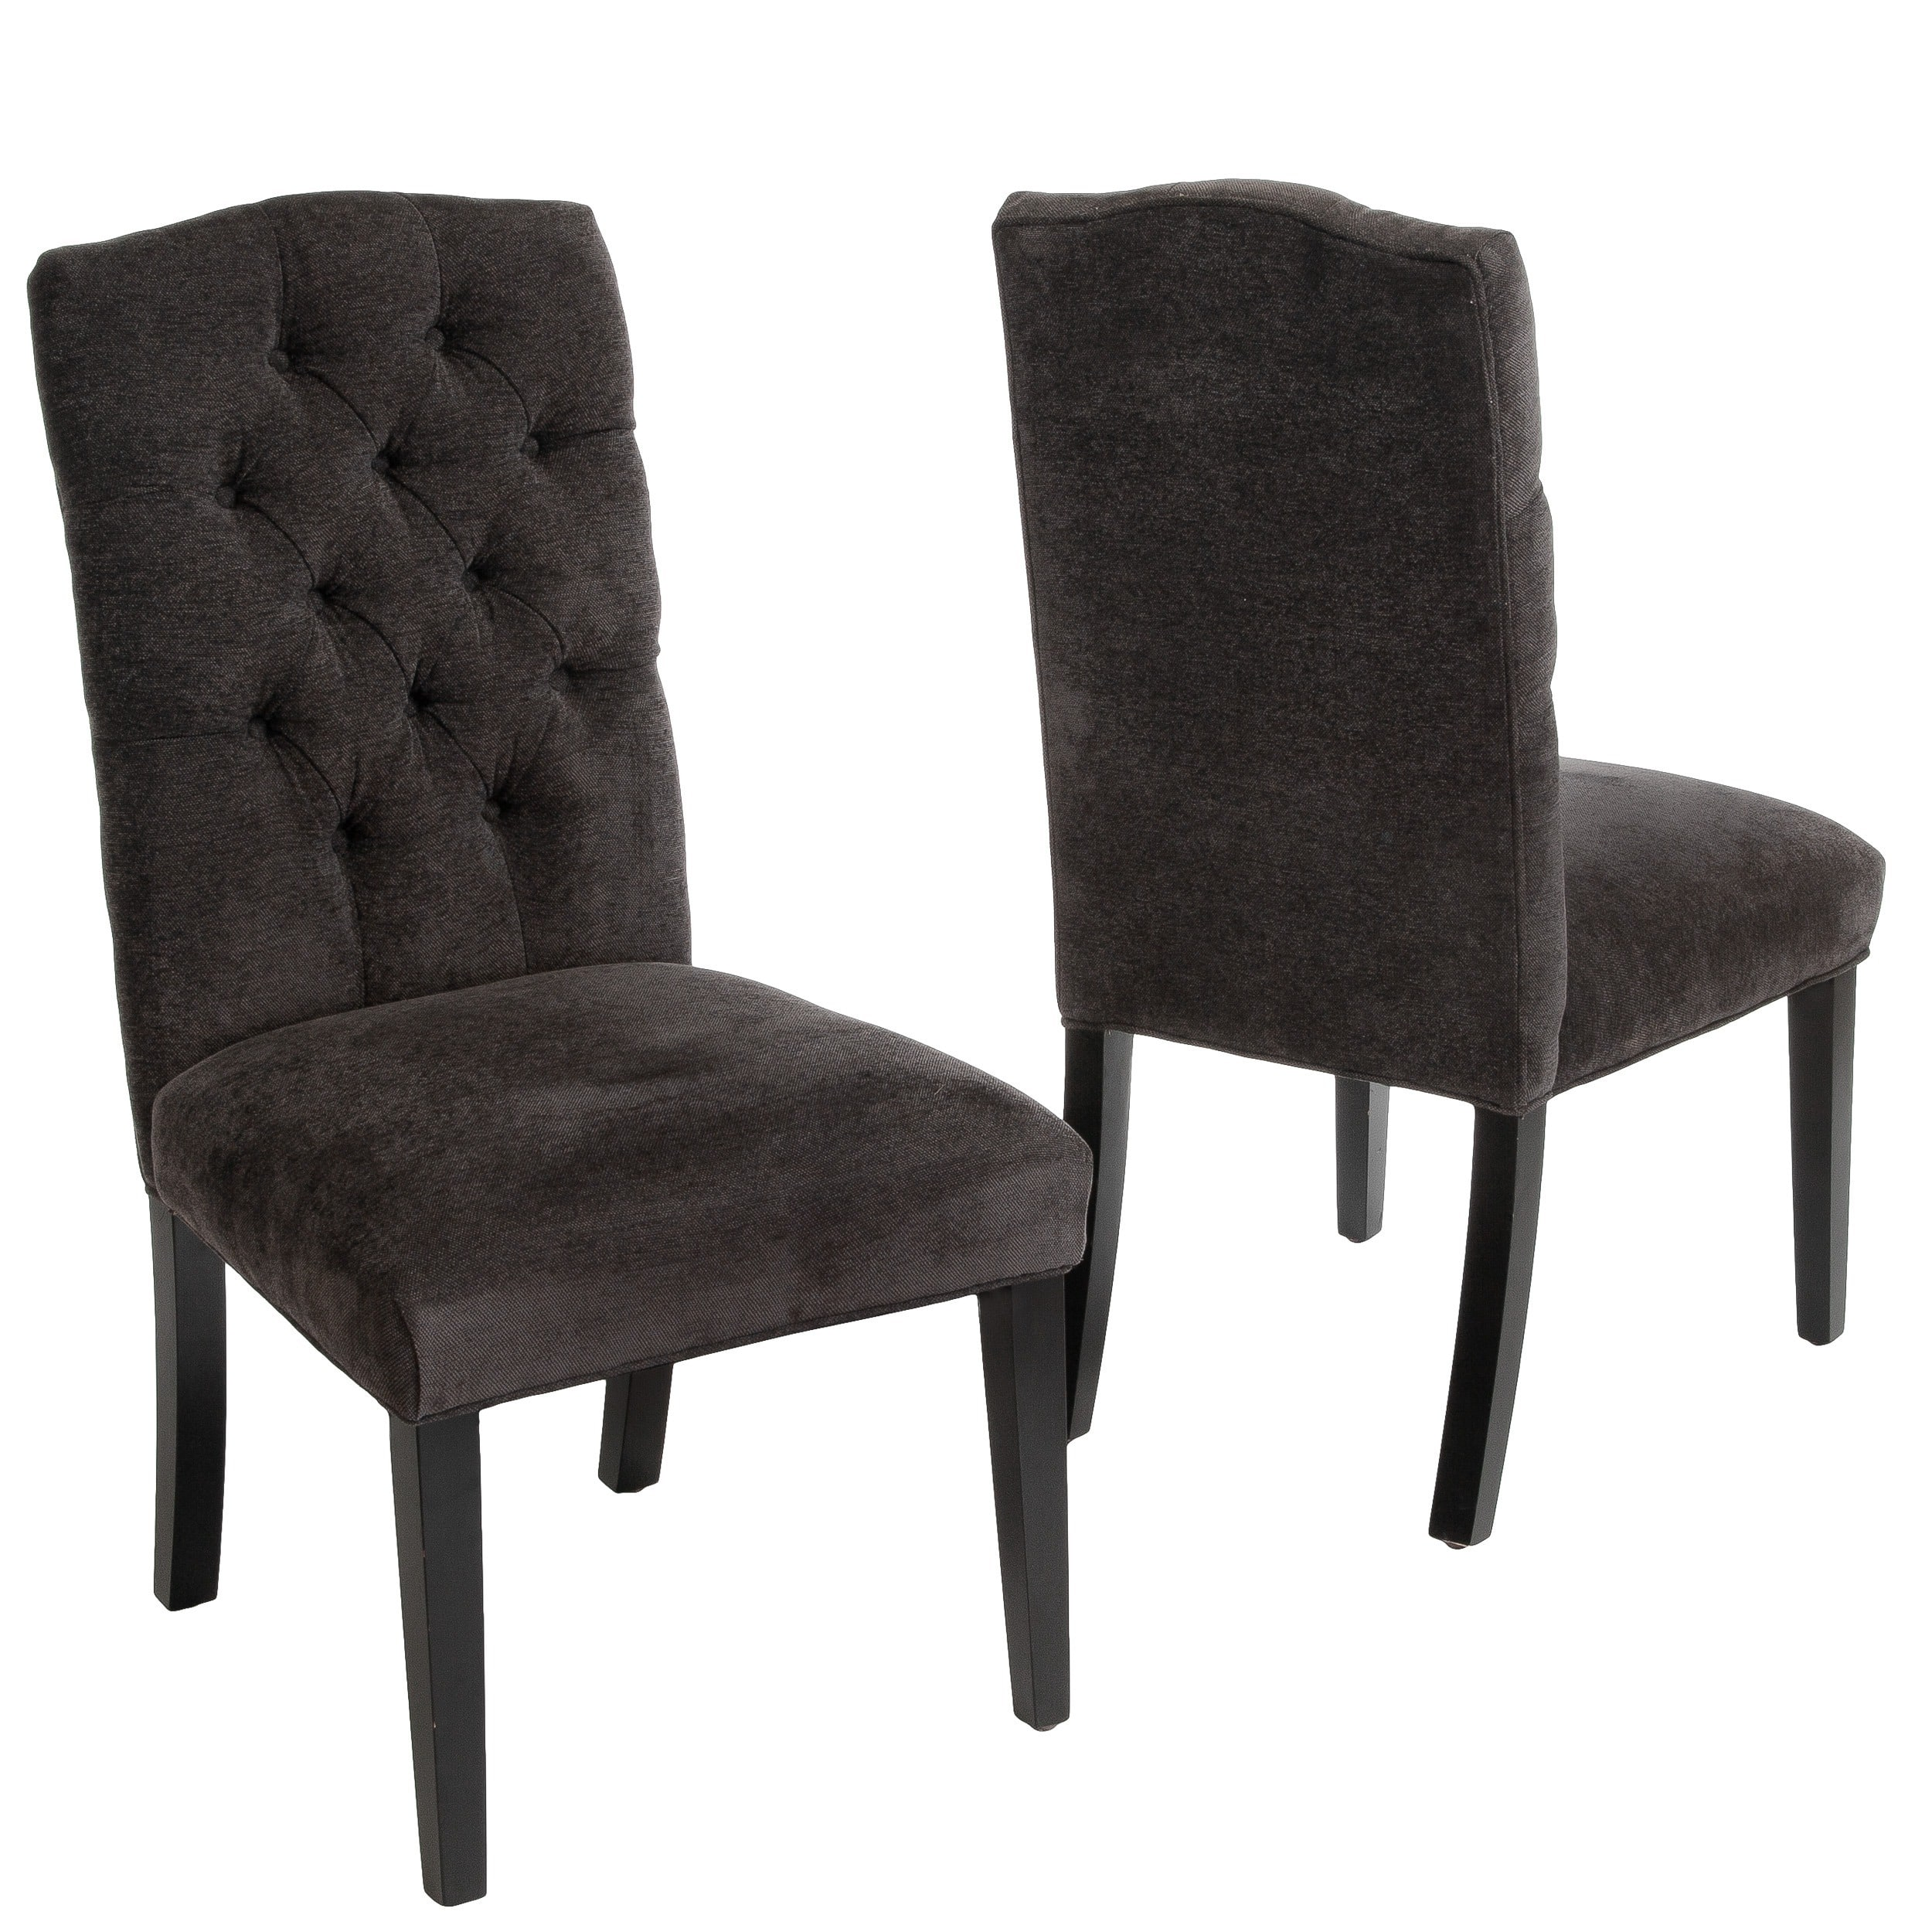 black and white dining room chairs buy kitchen amp dining room chairs at overstock 7999